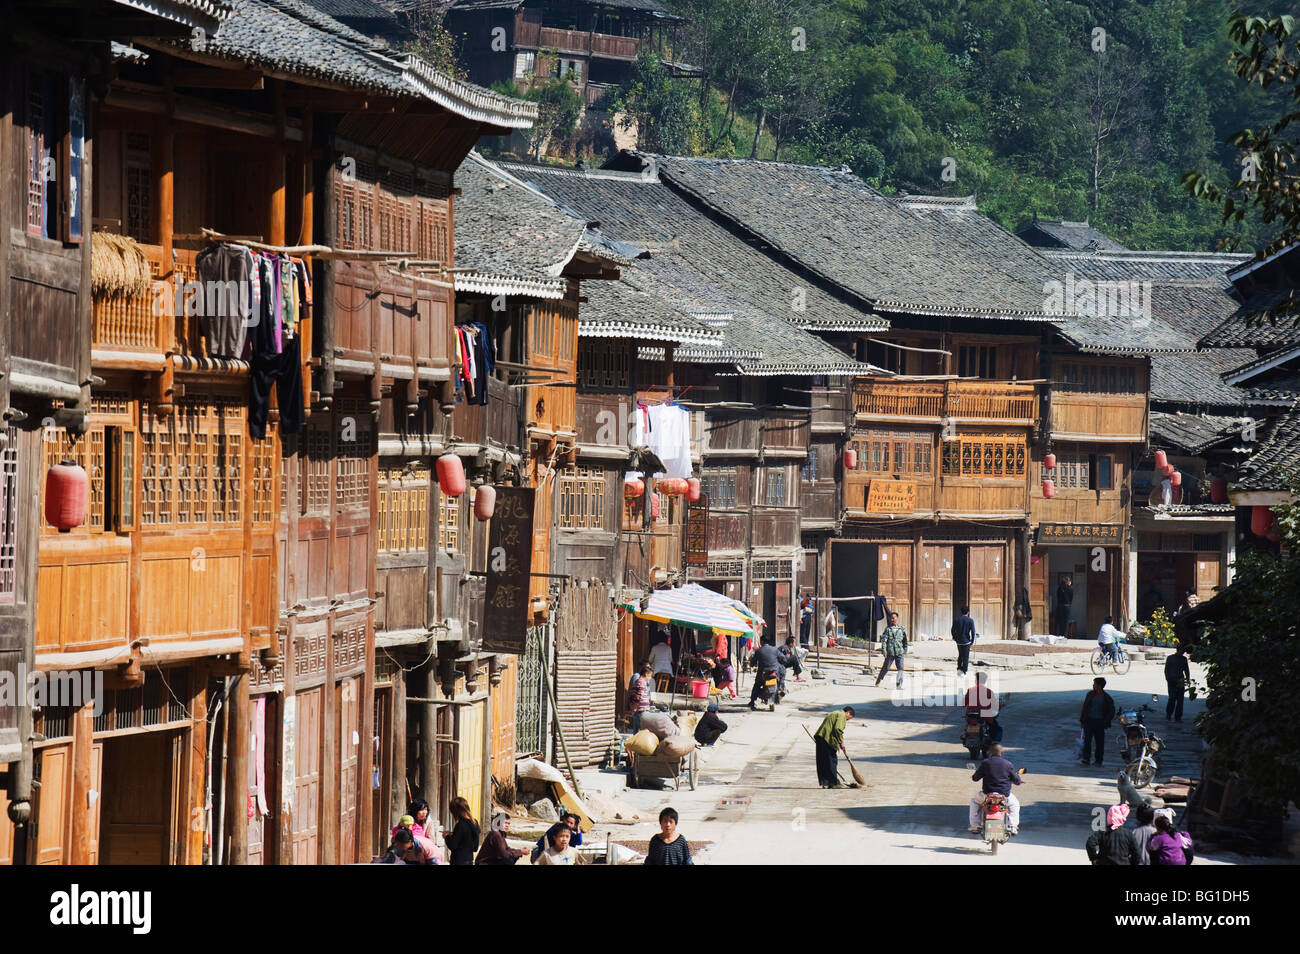 Traditional wooden houses in Zhaoxing Dong ethnic village, Guizhou Province, China, Asia Stock Photo